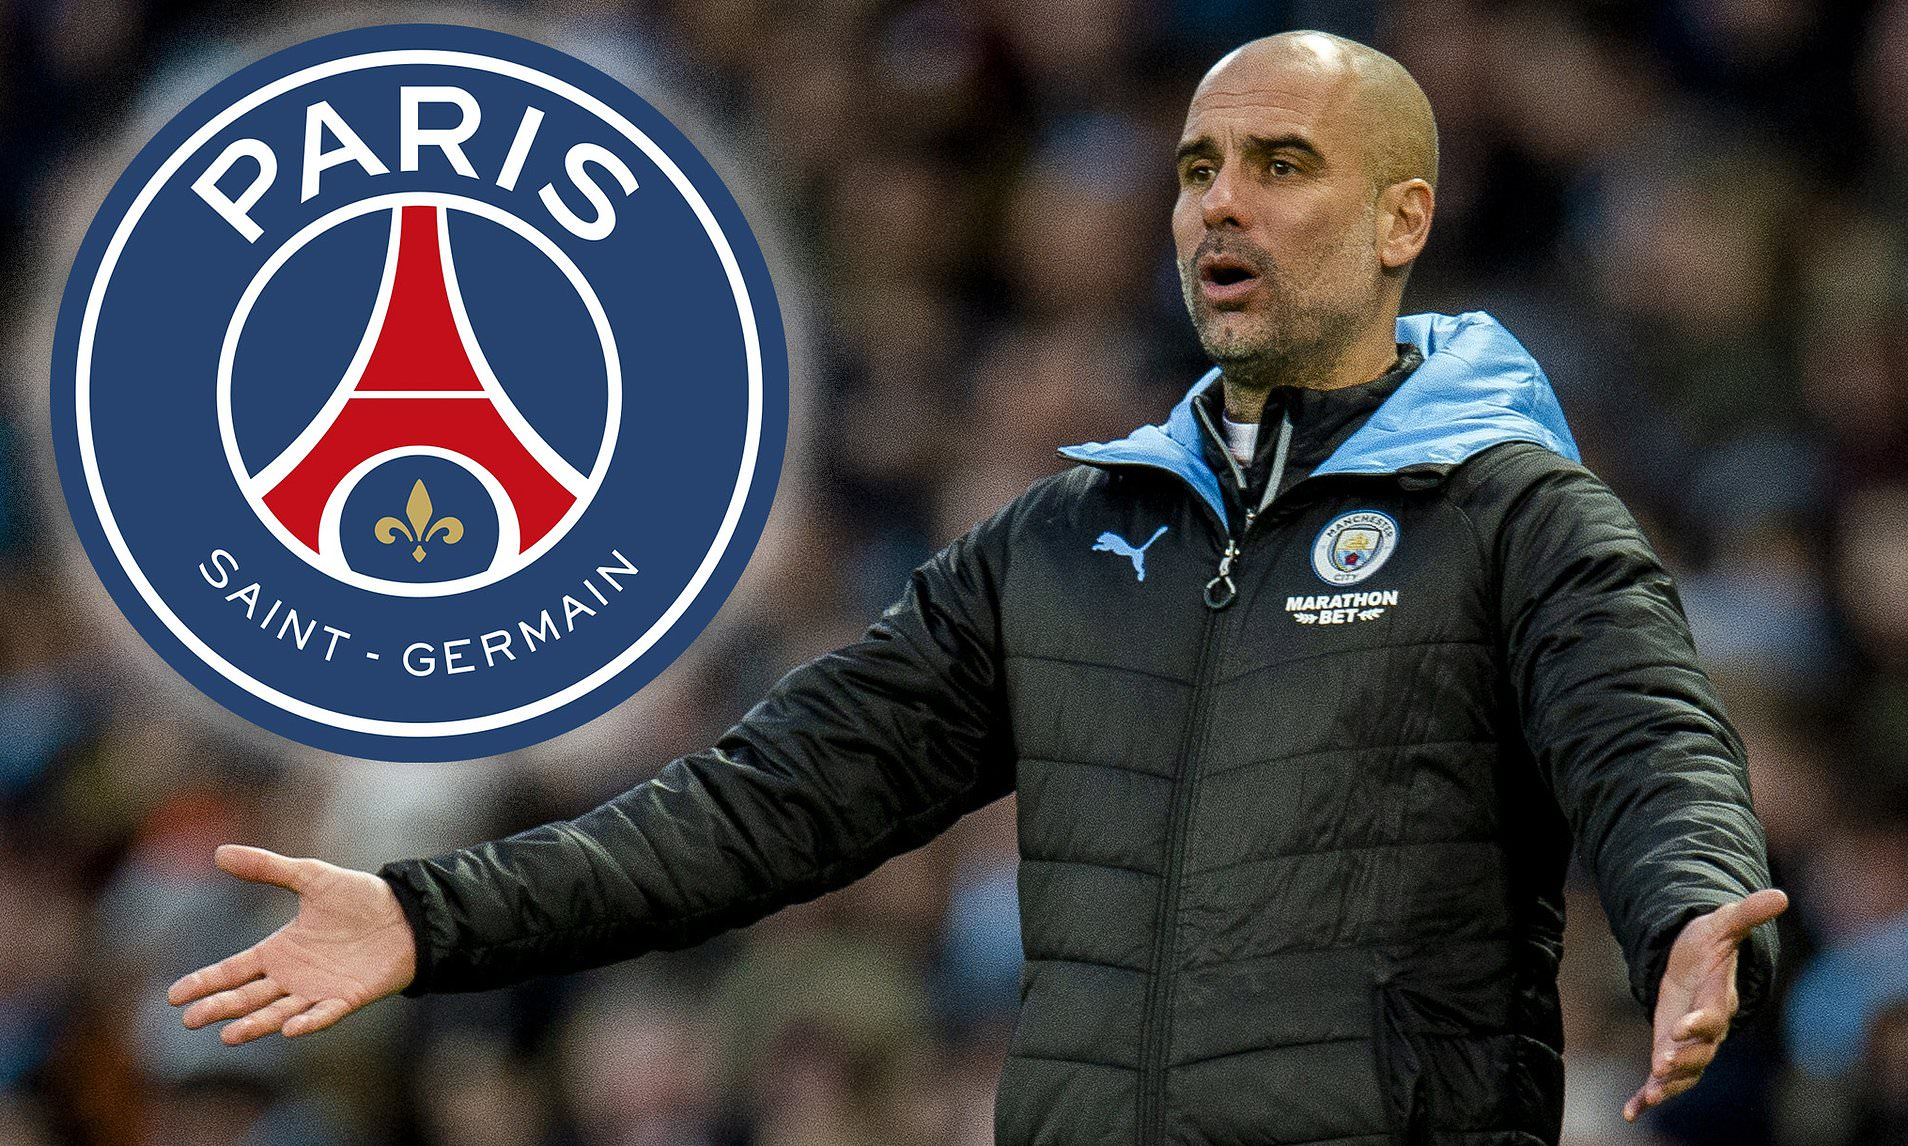 Psg to offer guardiola huge deal - Bóng Đá